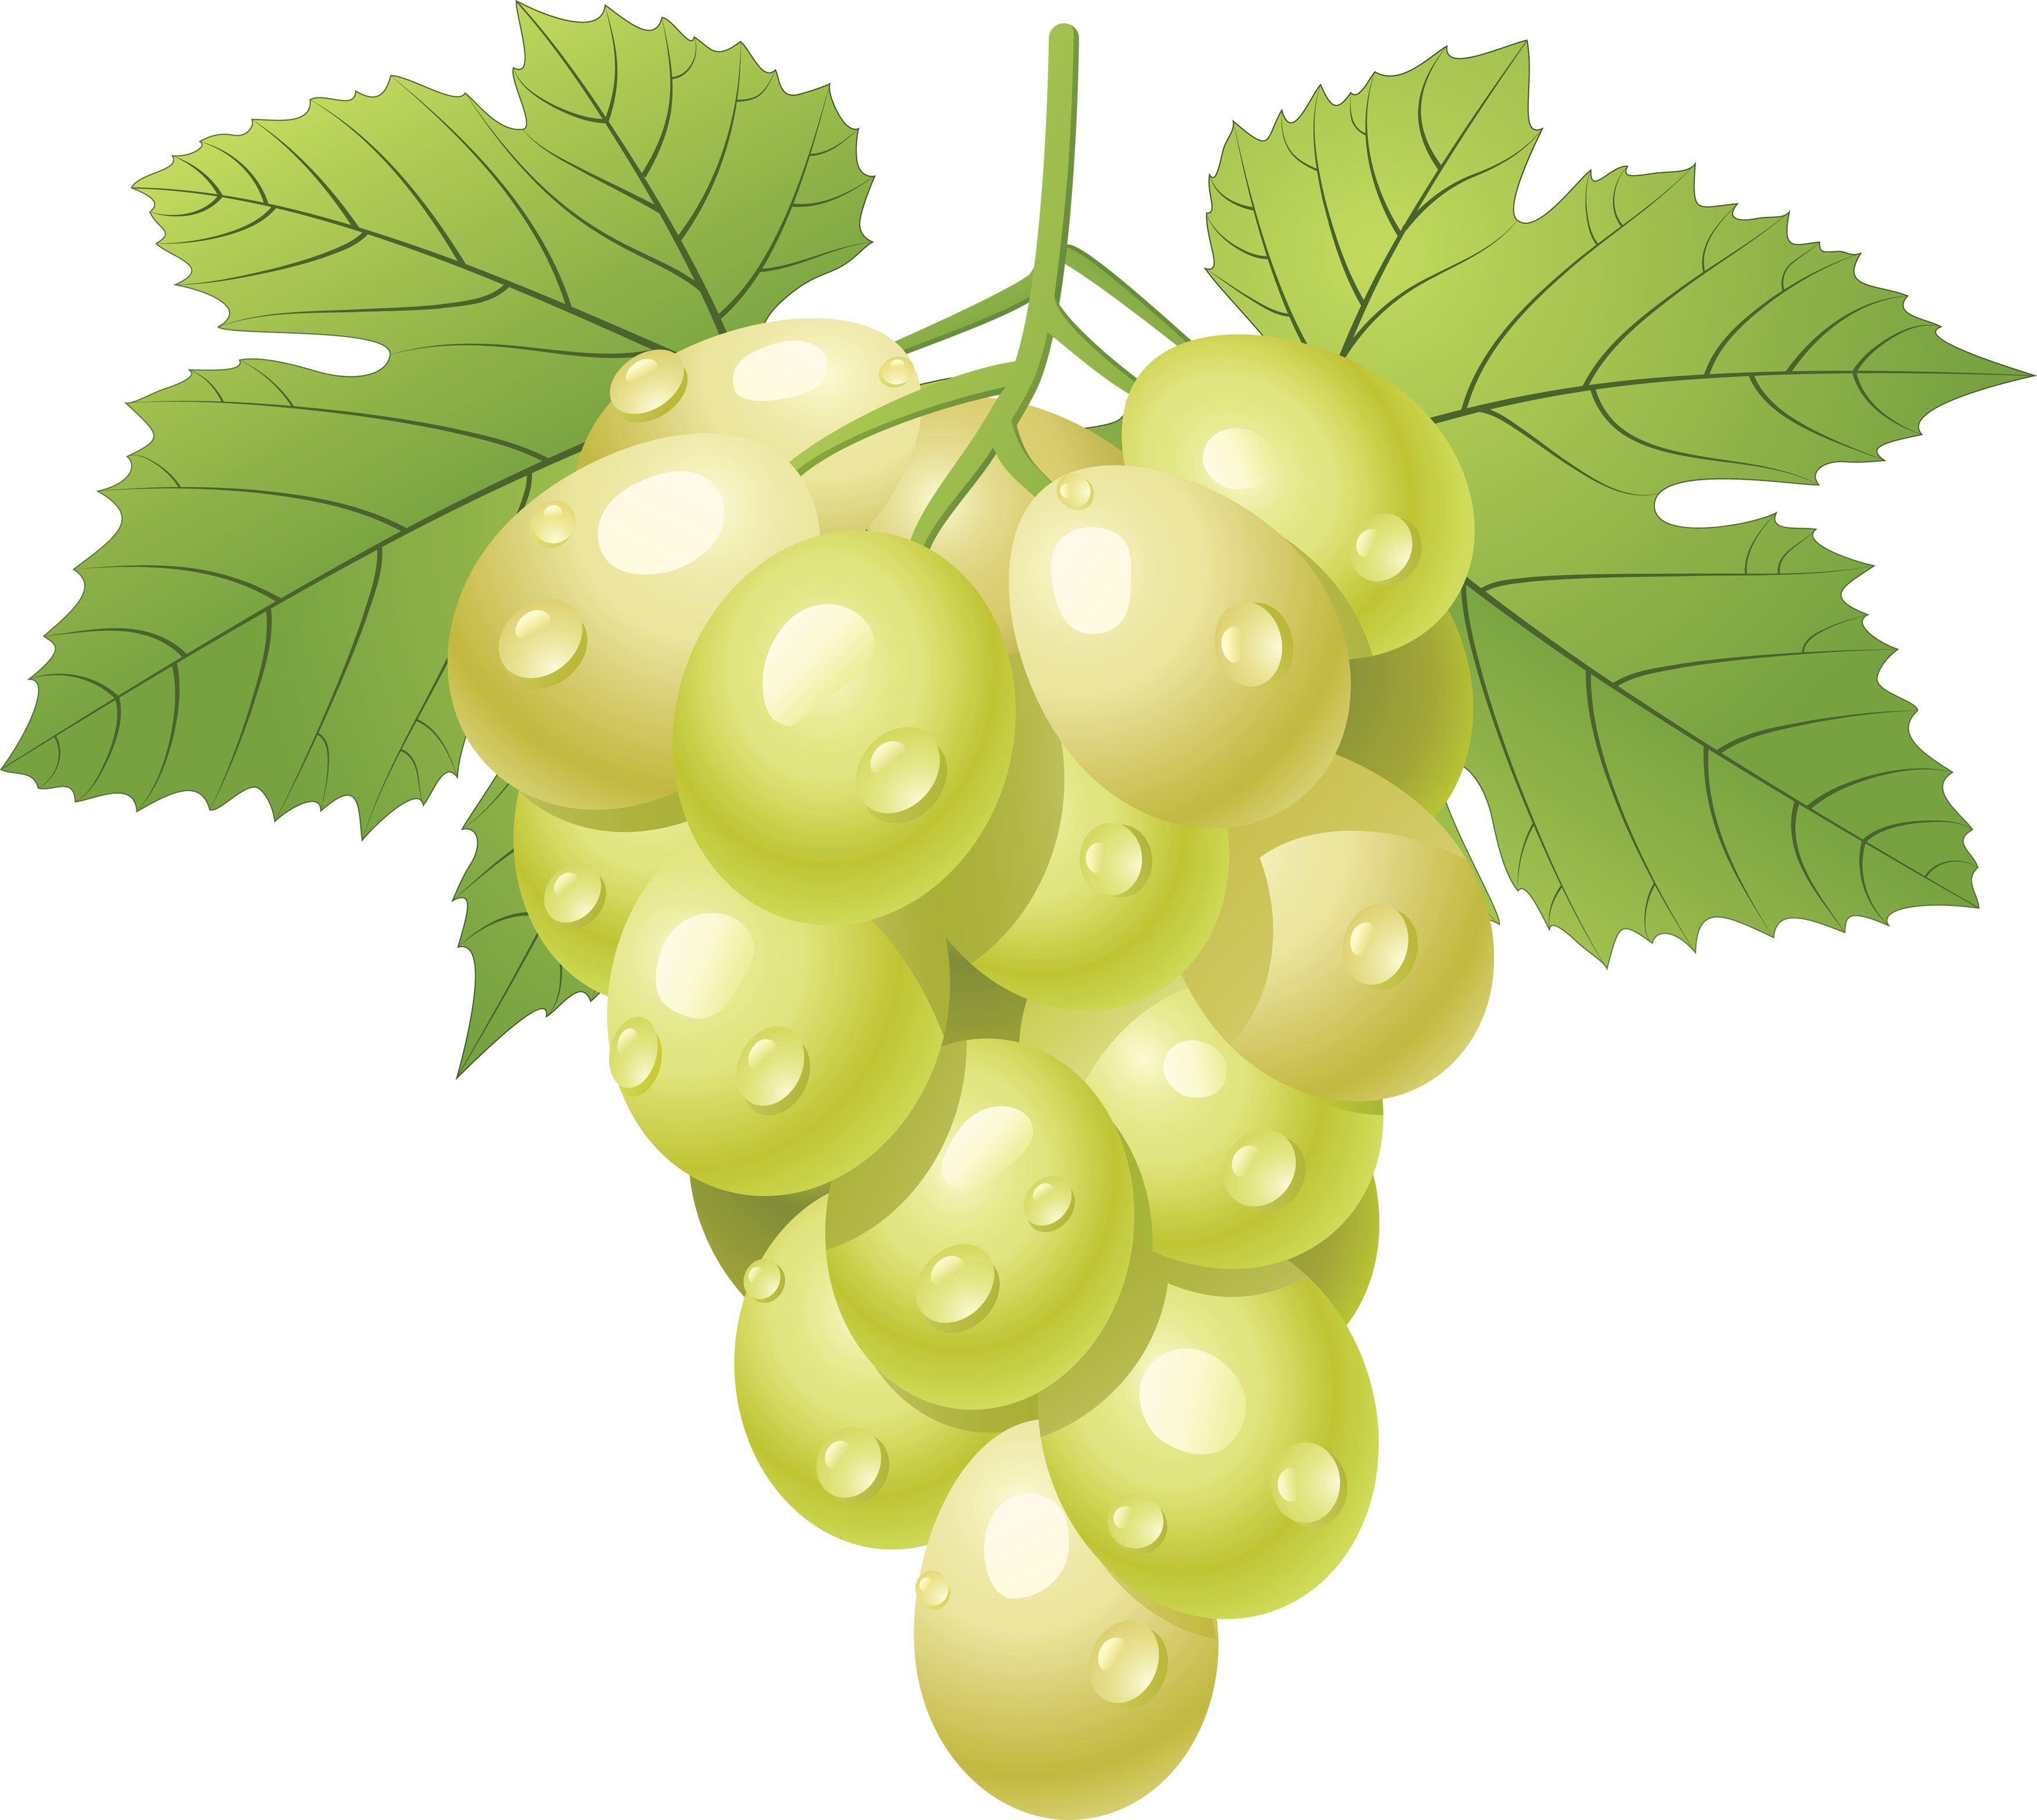 Grapes clipart cartoon.  collection of green